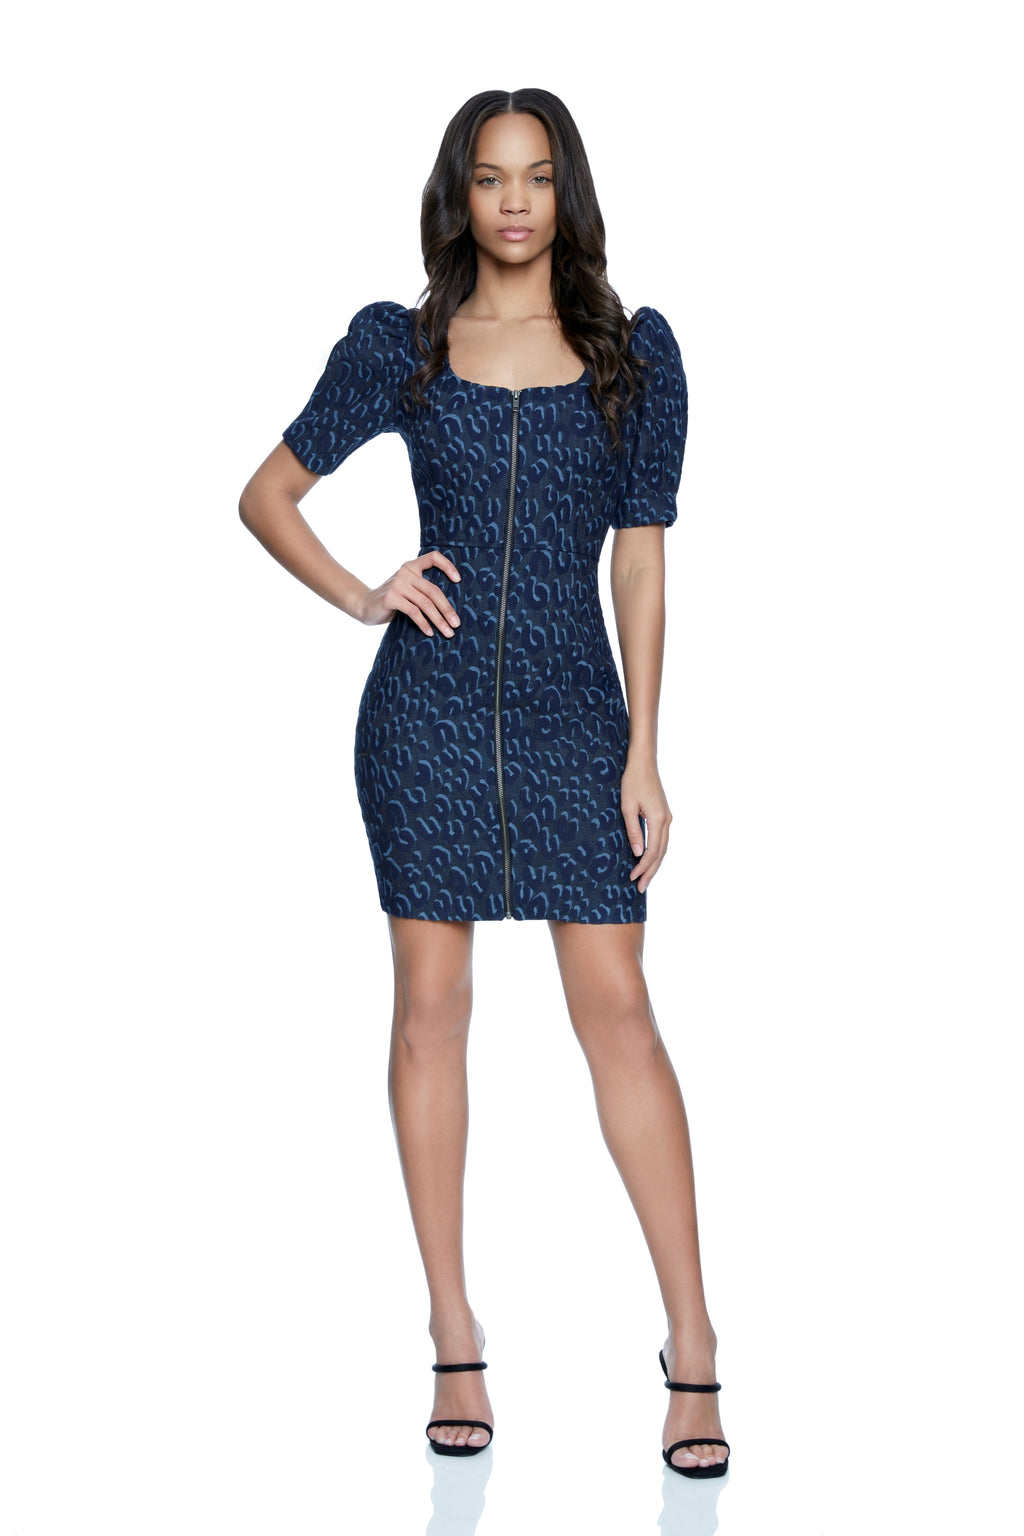 Madonna Puff Sleeve Mini Dress